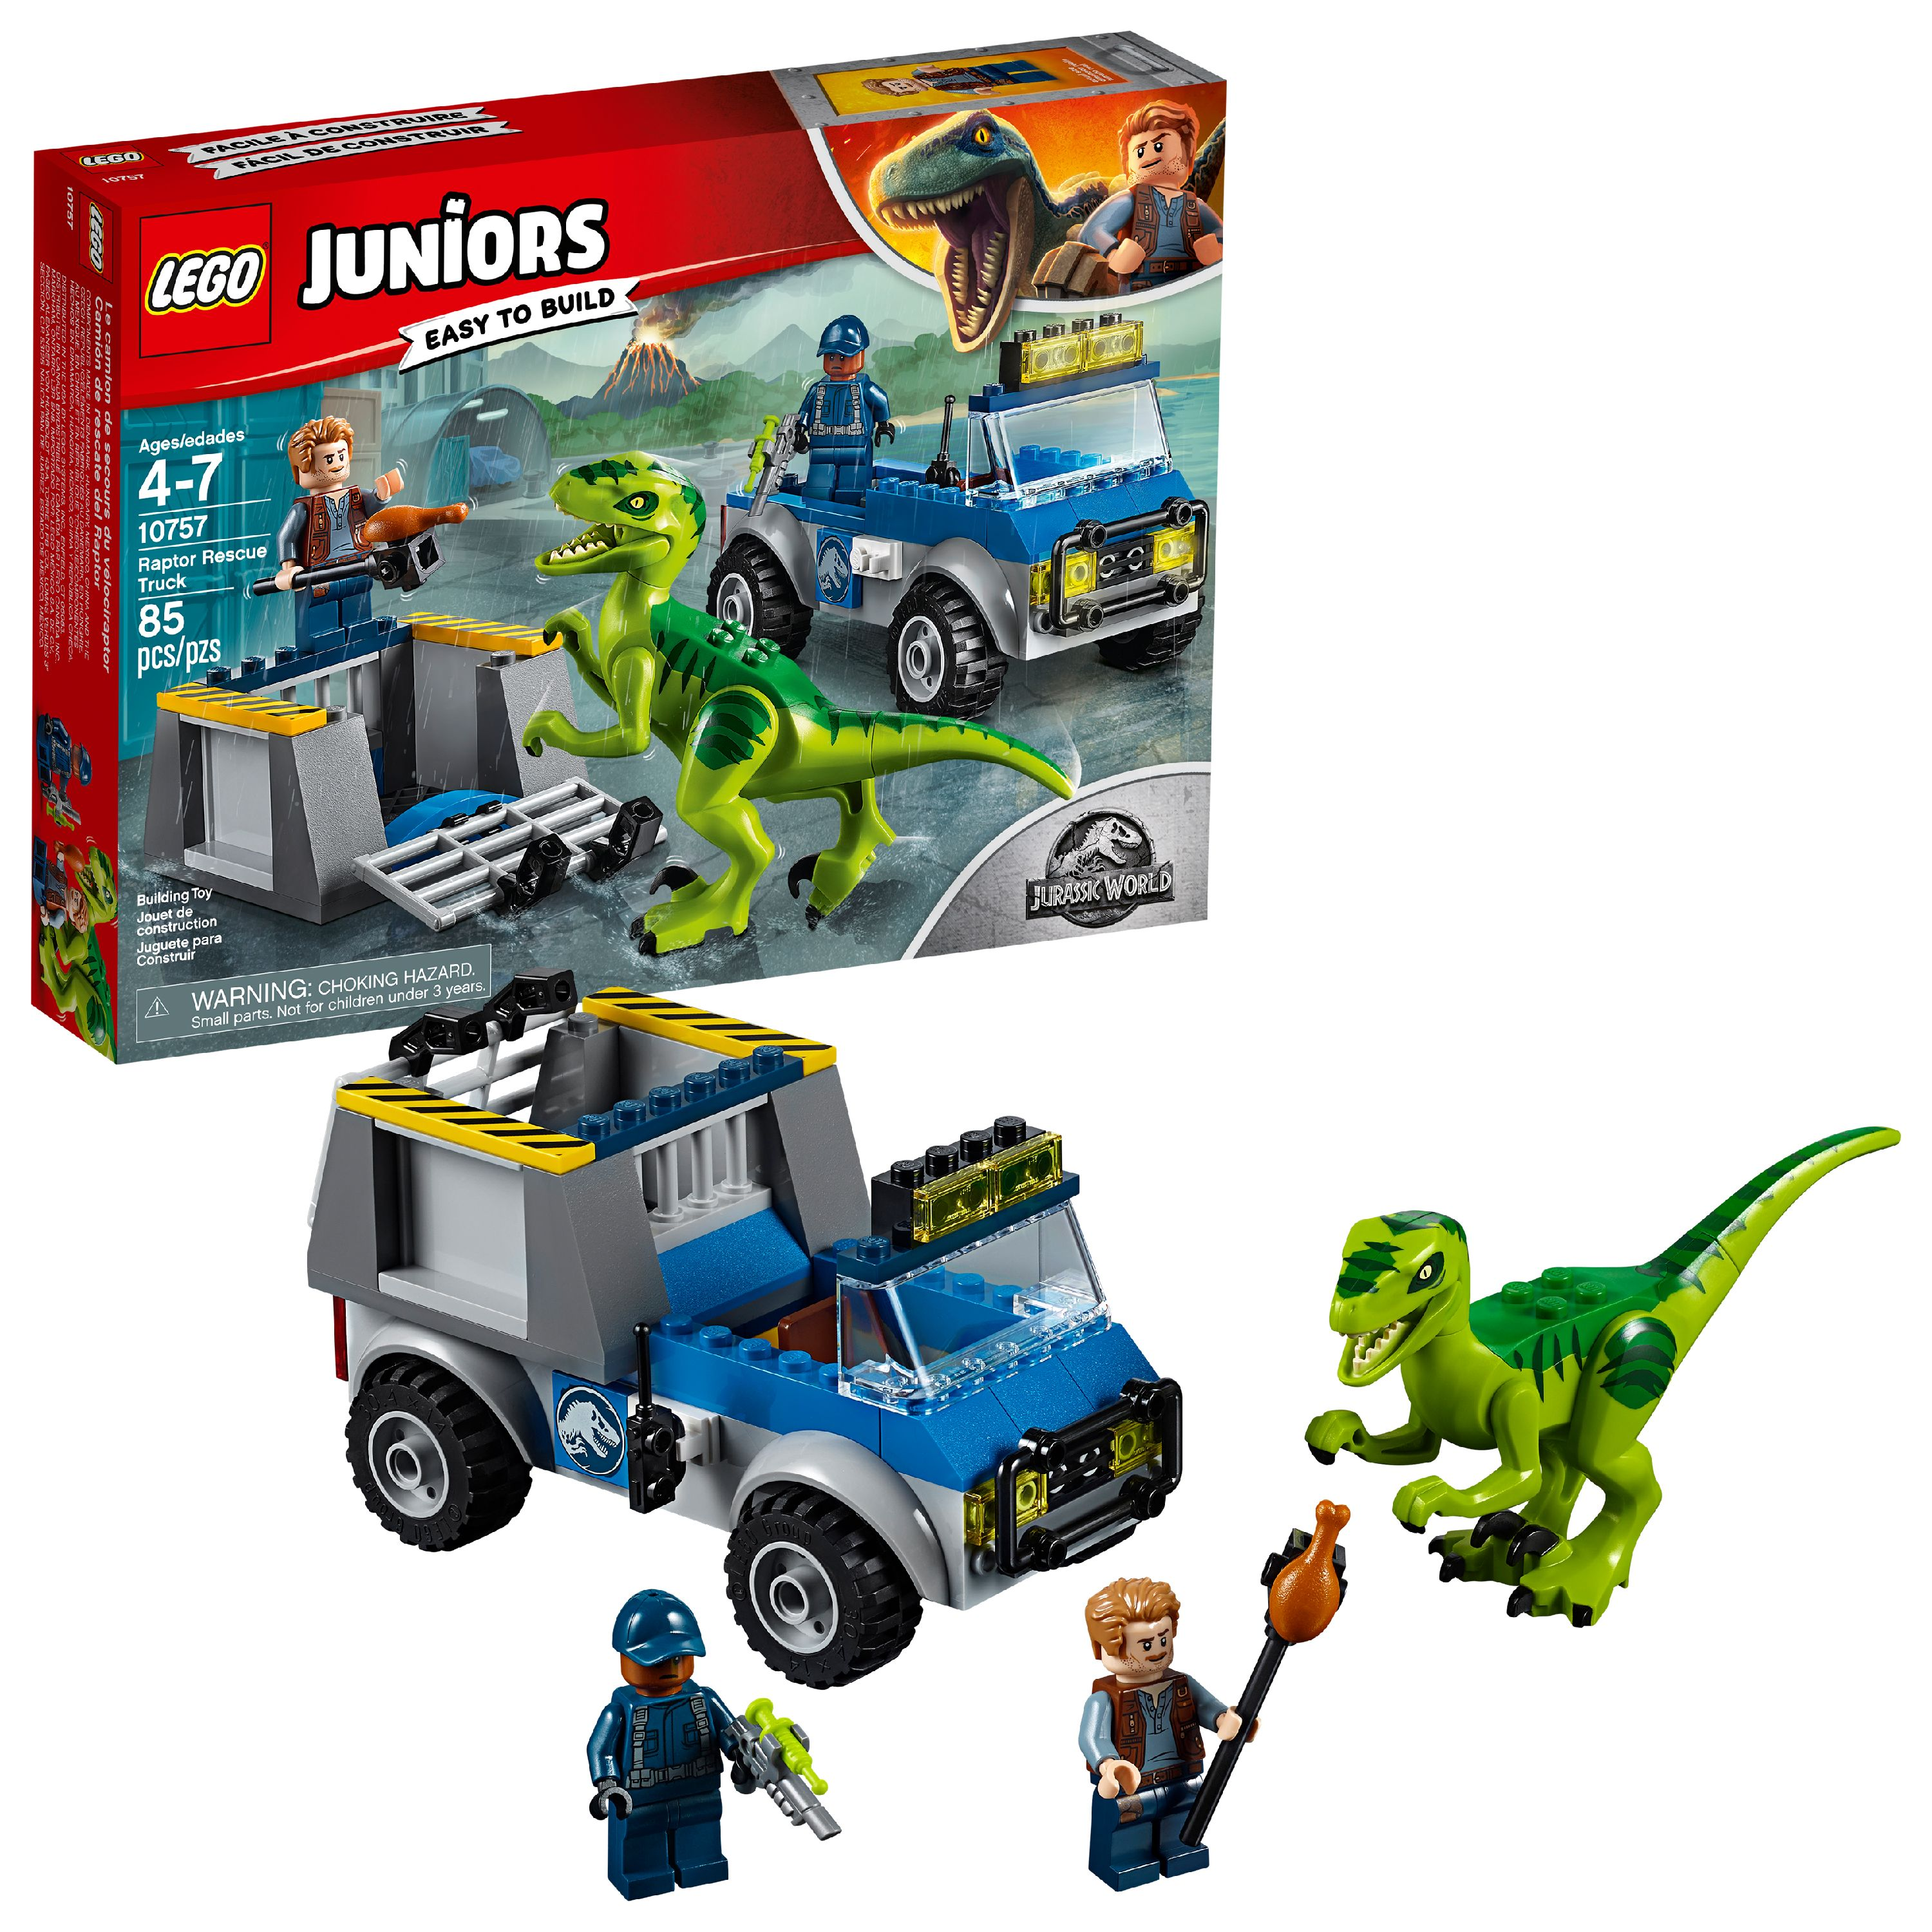 LEGO Juniors Raptor Rescue Truck 10757 (85 Pieces)